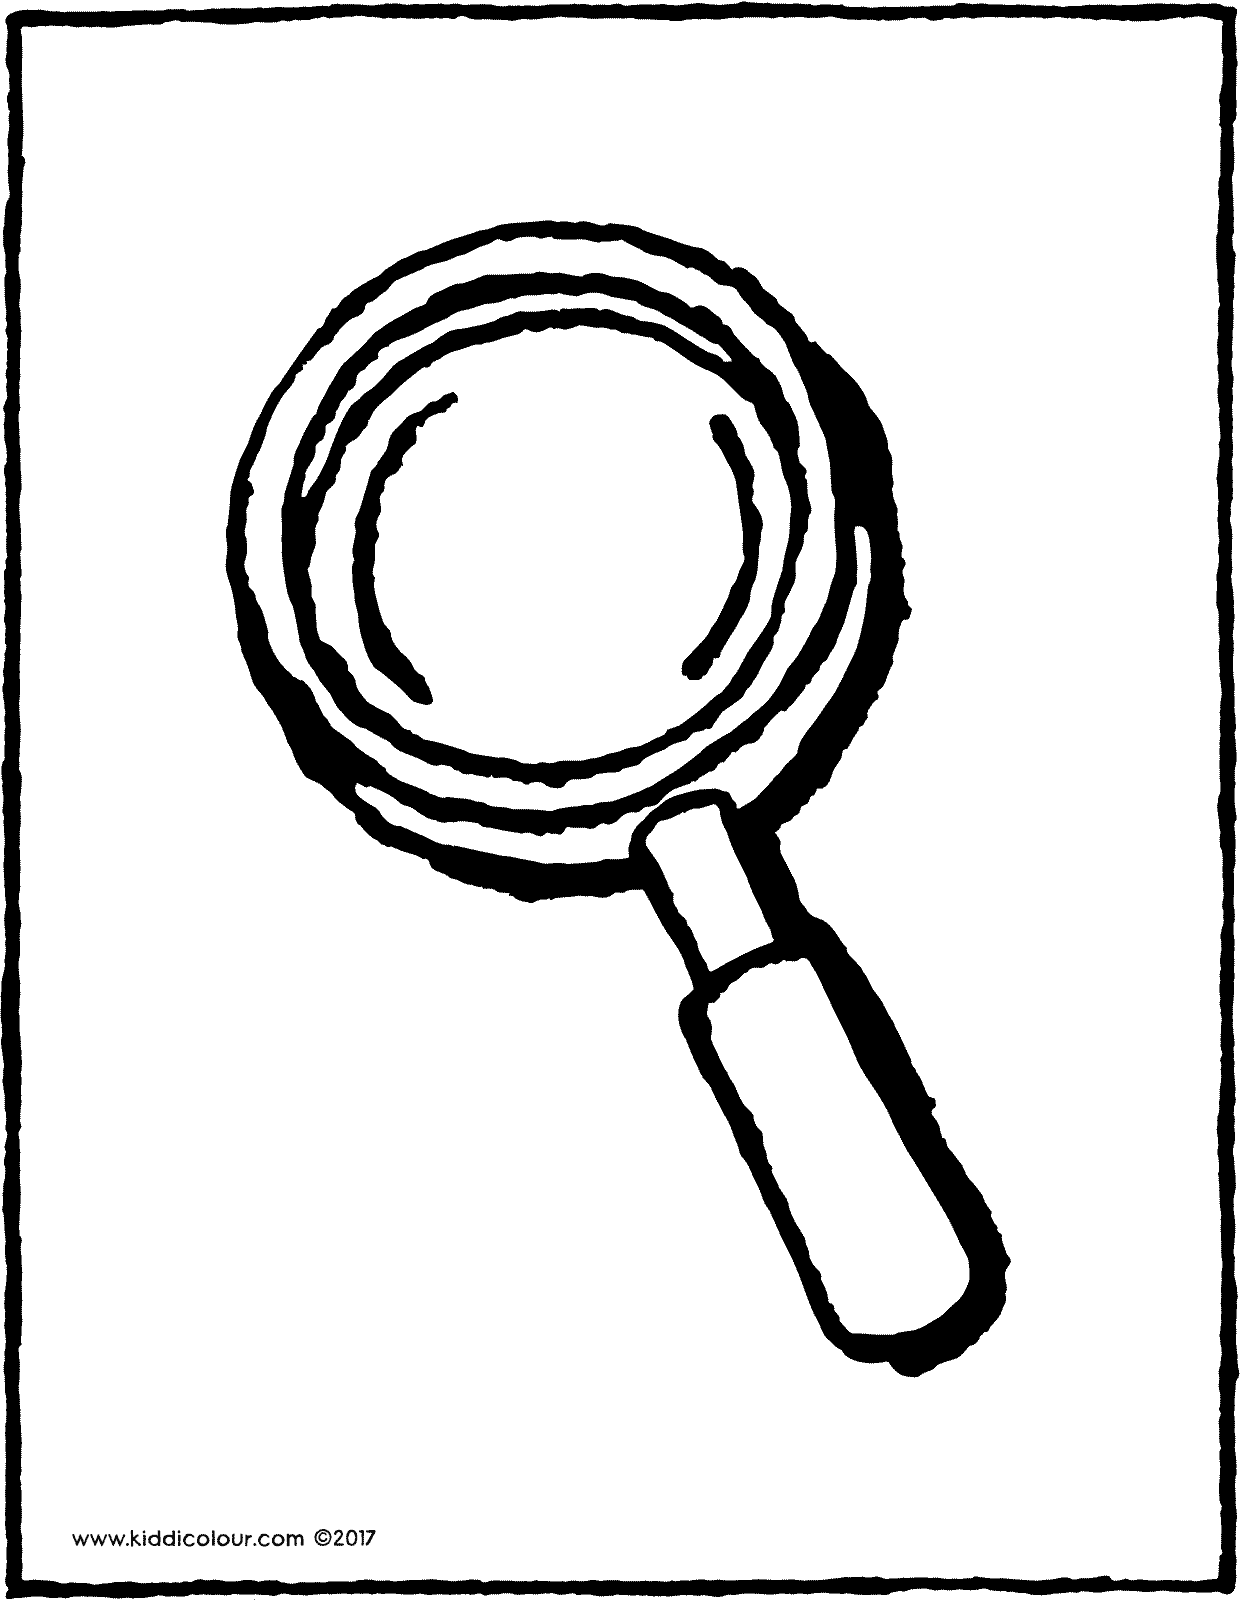 Magnifying Glass Coloring Page At Getcolorings